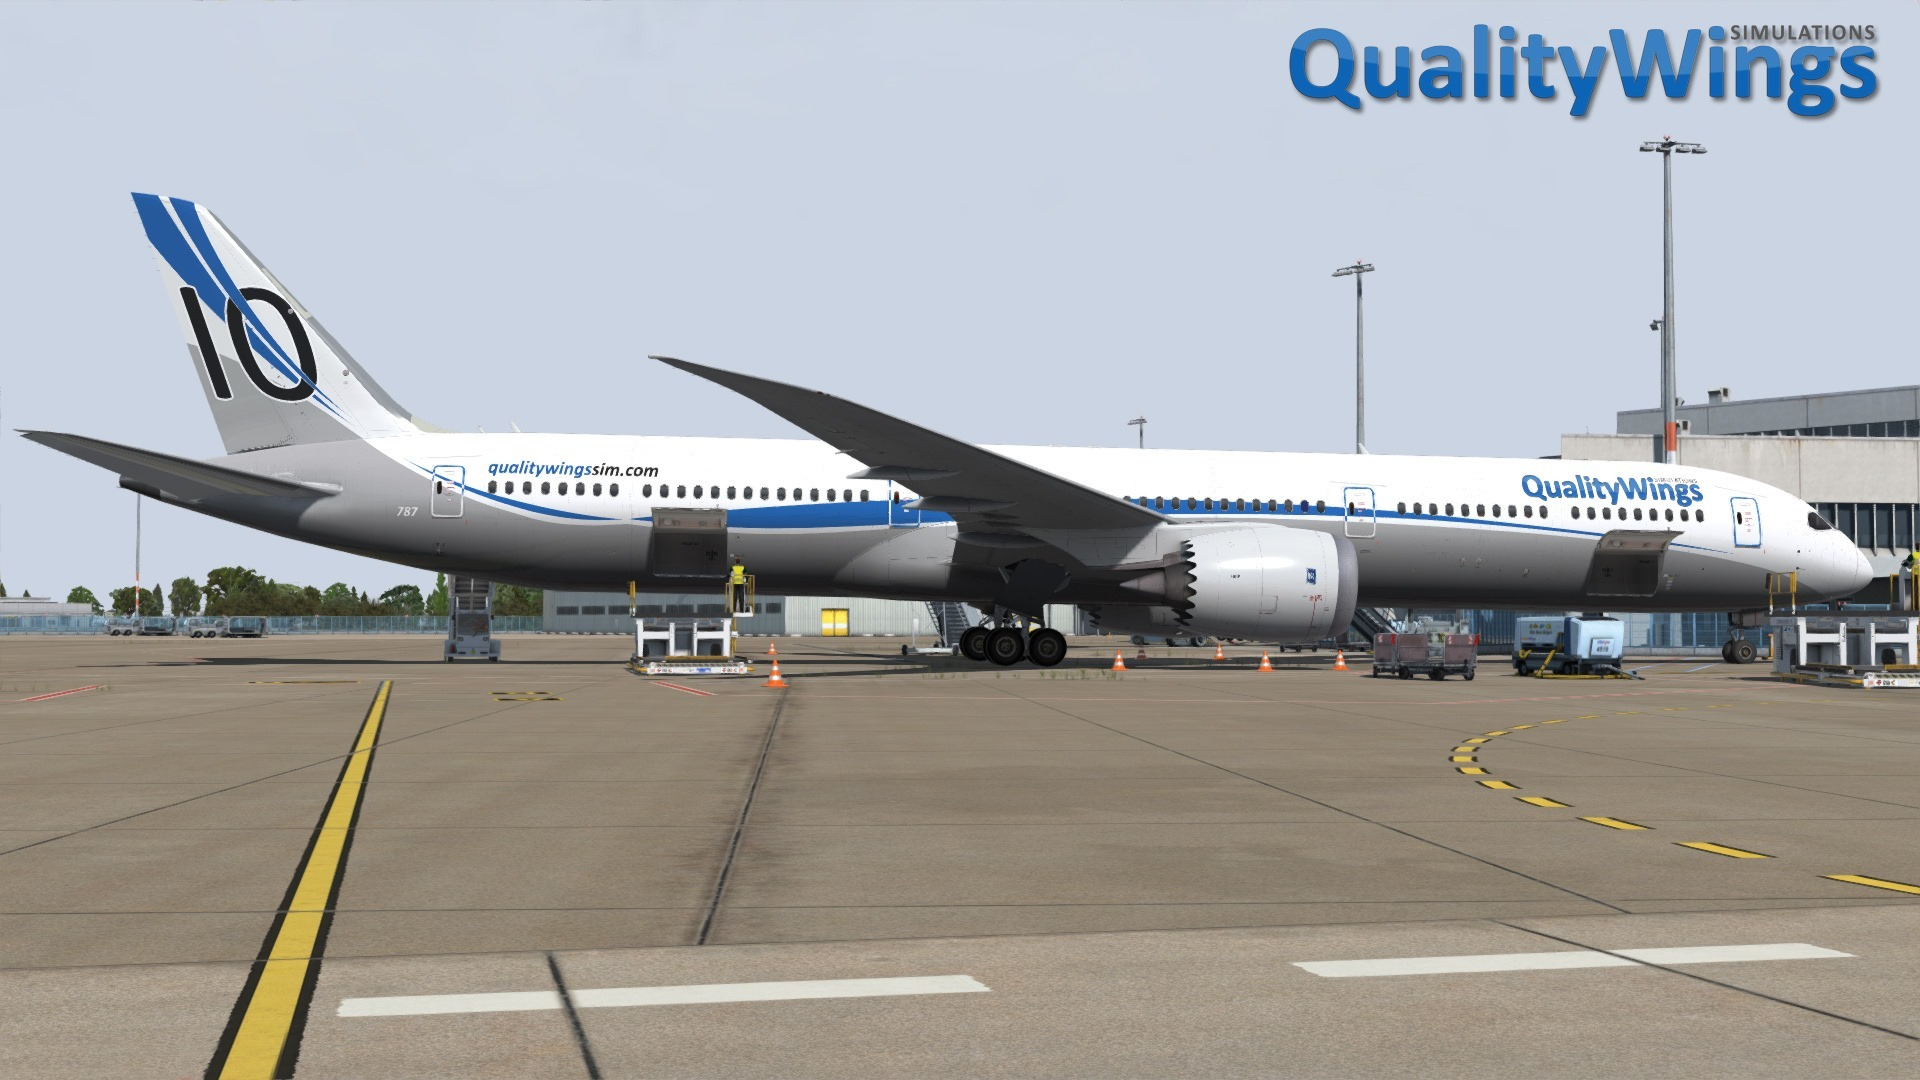 Qualitywings Simulations 787 10 (1)